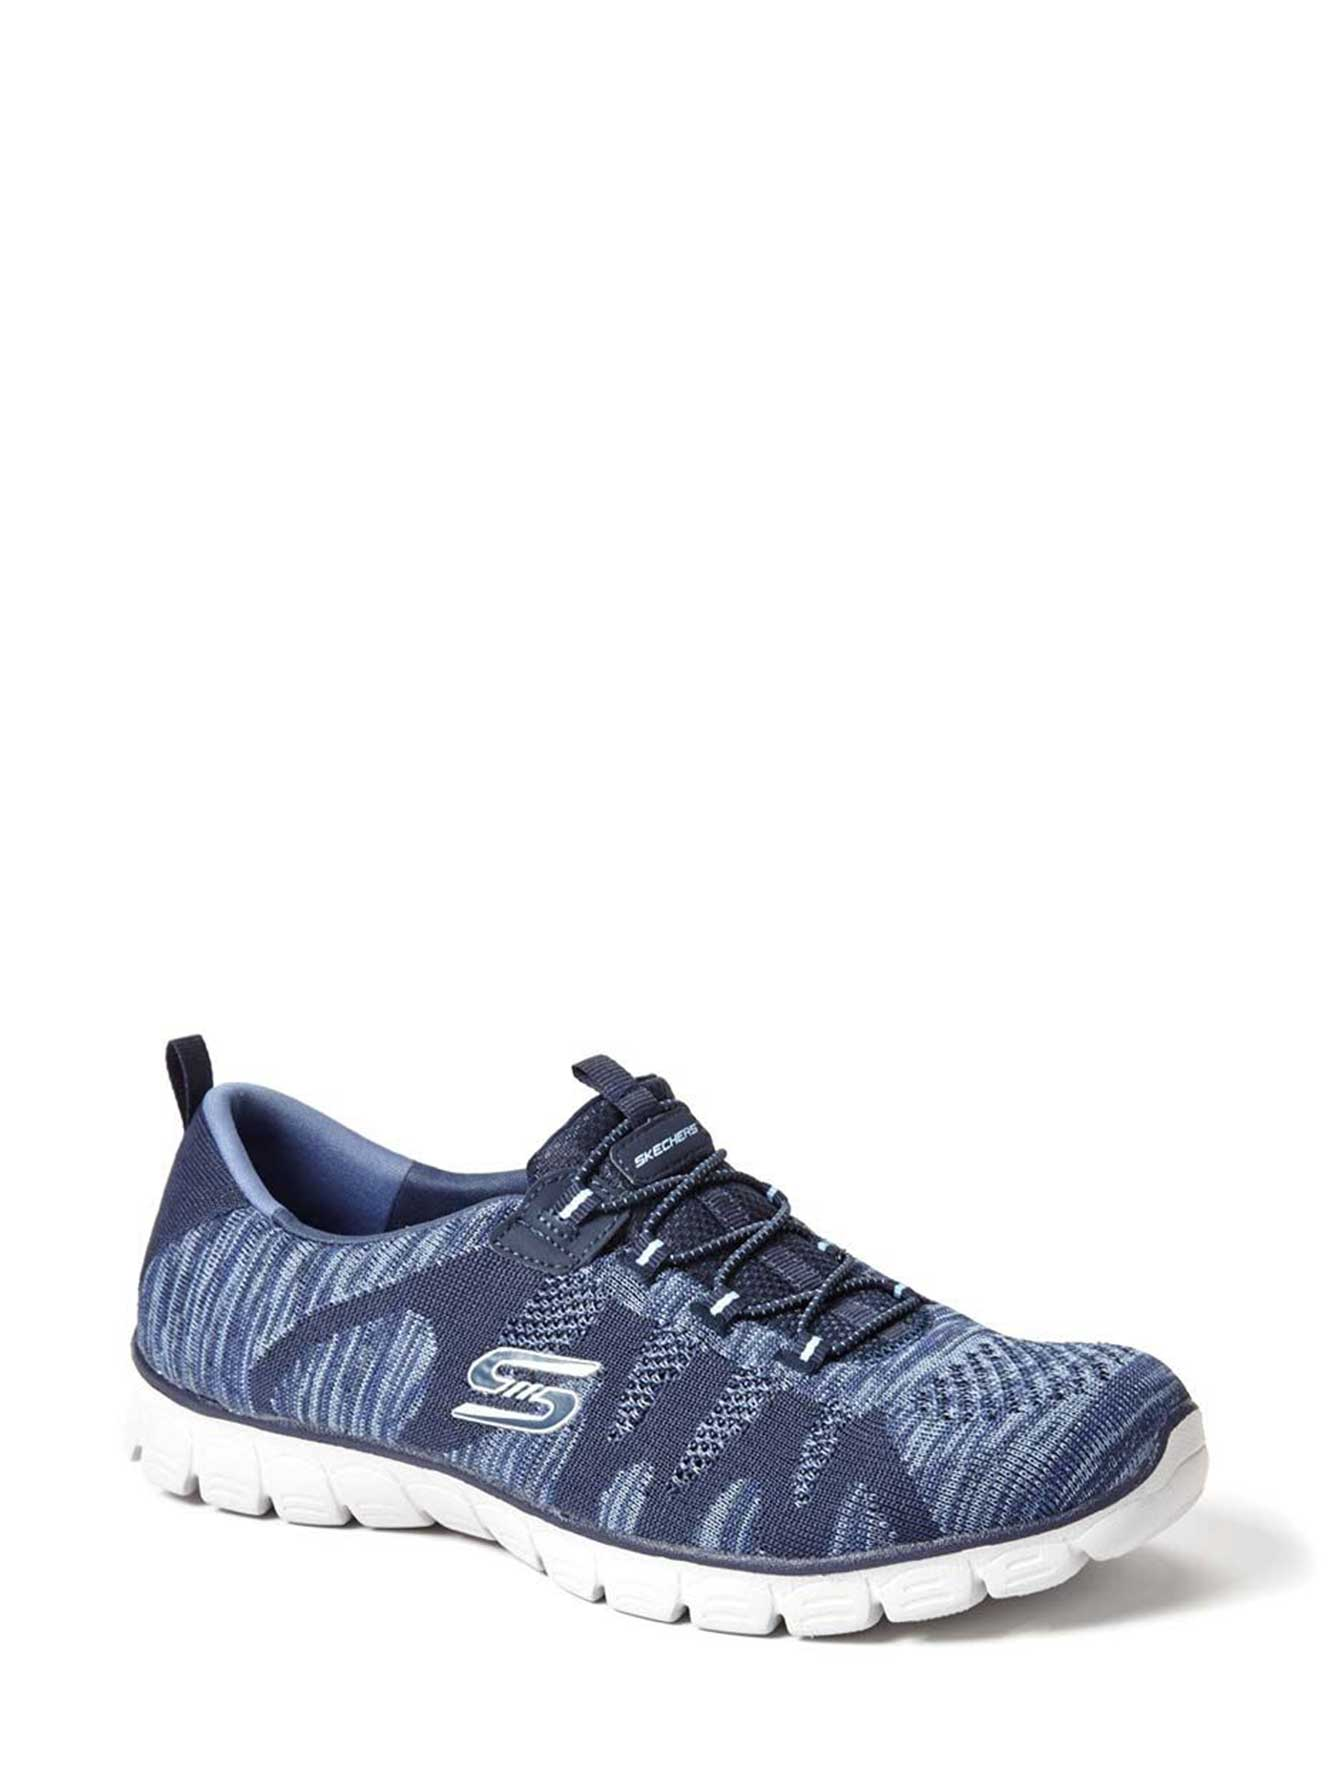 Shop this impressive selection of casual shoes for women from Academy and discover a new design that looks amazing with your wardrobe. Fashion-forward women know it to be true-- shoes make the outfit.